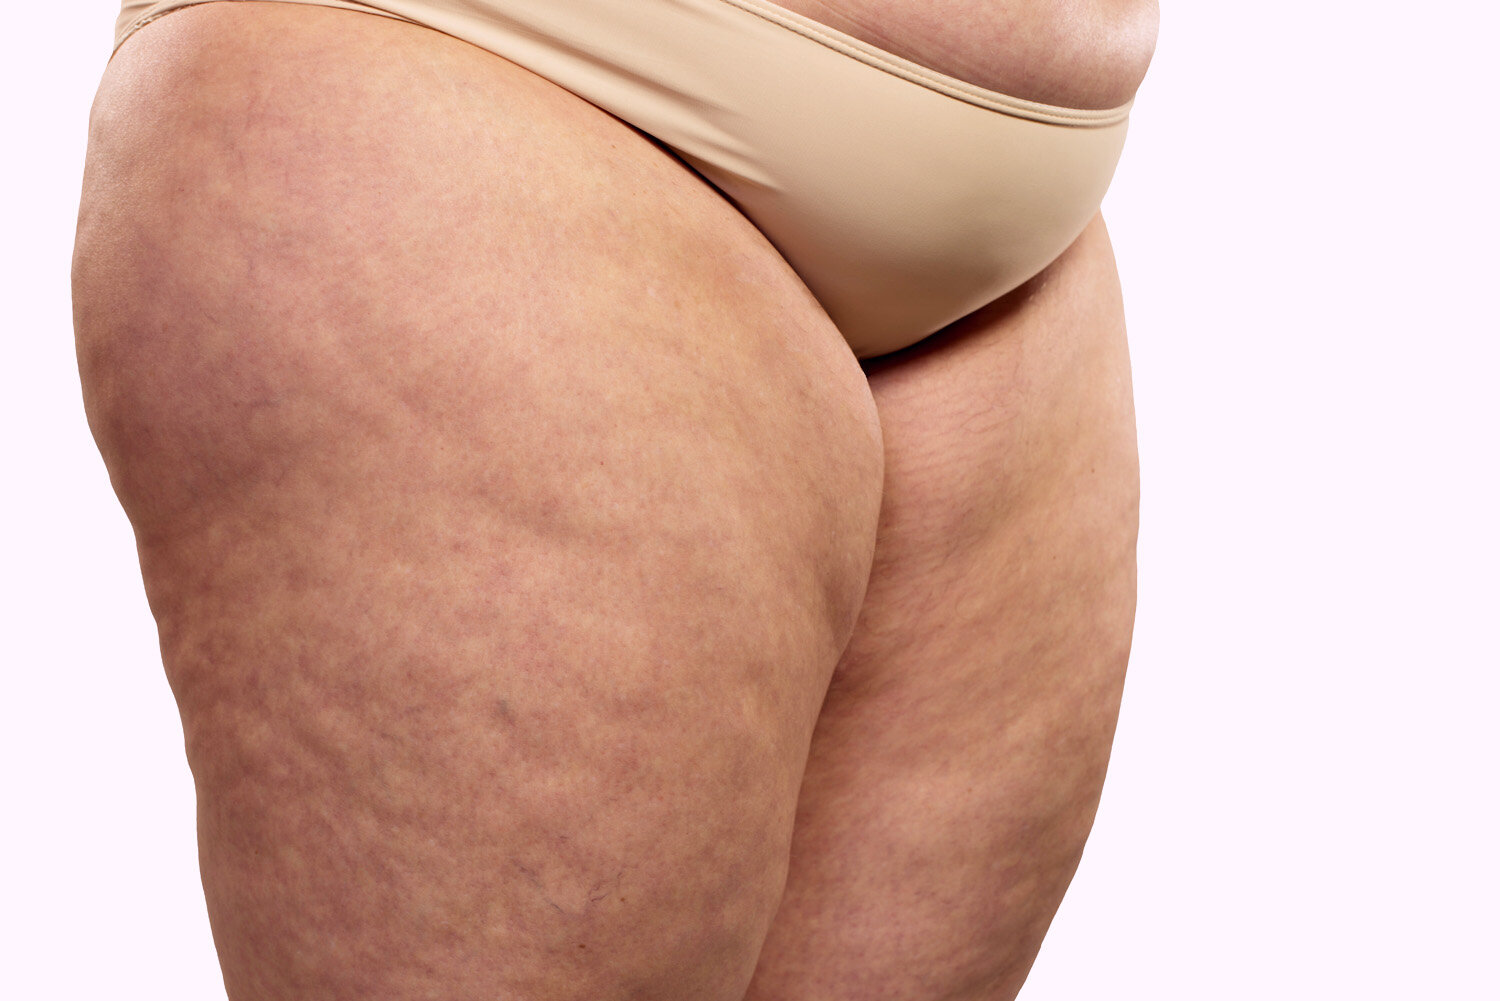 Painful Cellulite Why Does Cellulite Hurt The Cellulite Experts Lipotherapeia